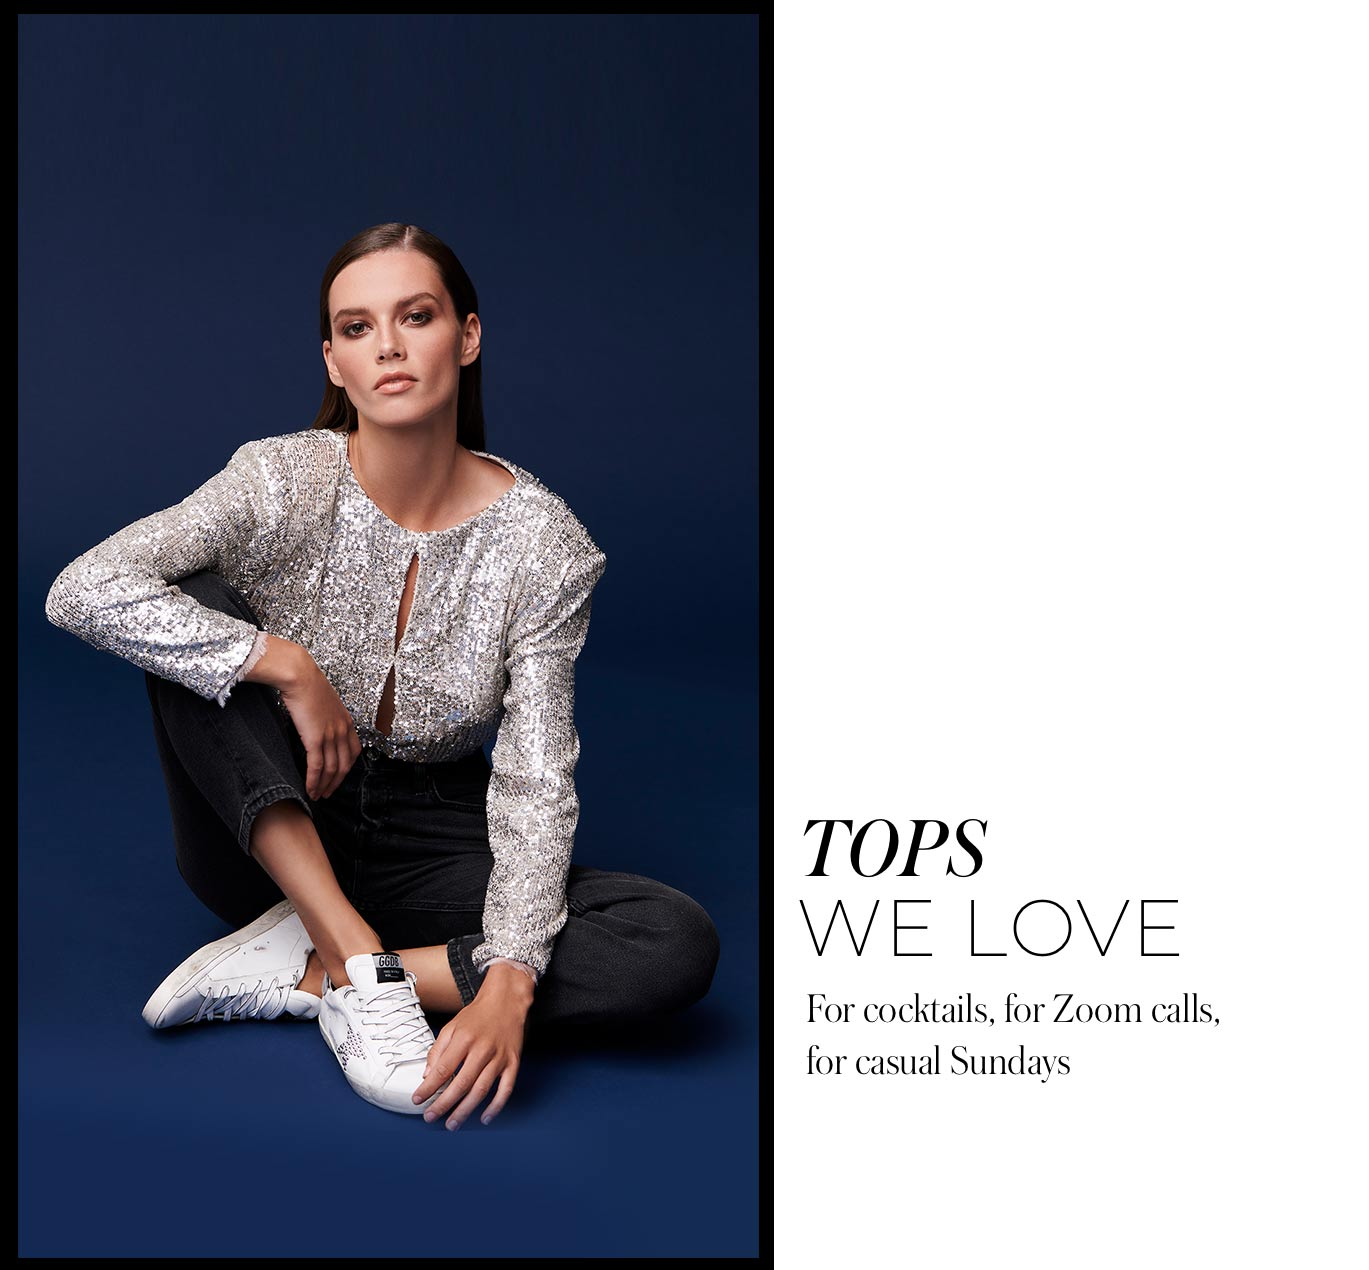 Tops We Love For cocktails, for Zoom calls, for casual Sundays